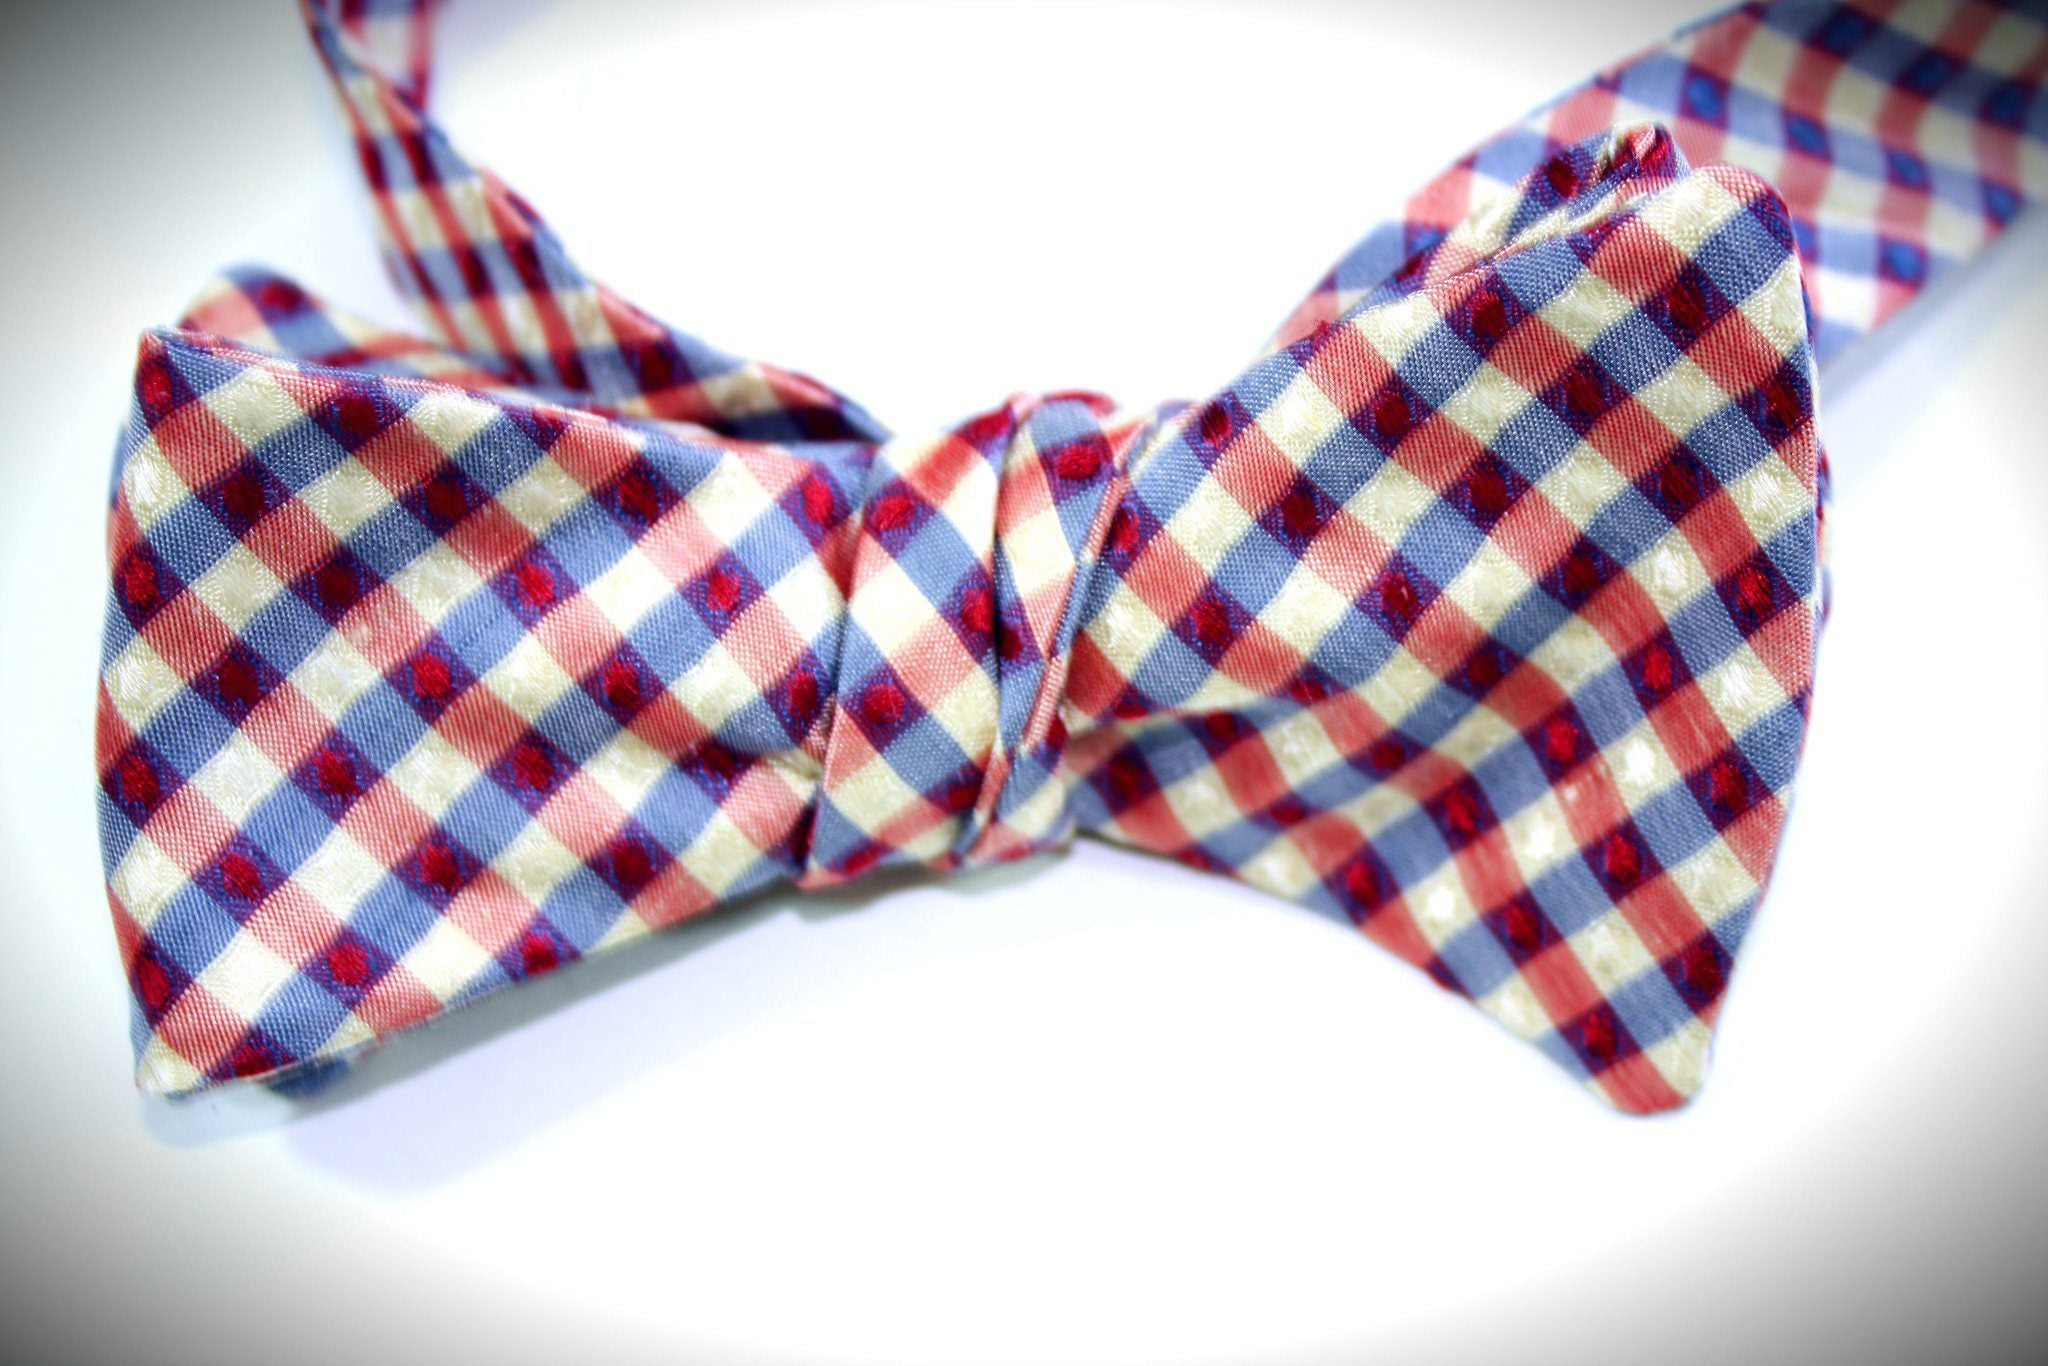 f0055dfae324e ella-bing-signature-cloth-bow-ties-the-virgil-leroy-silk-check-reversible- bow-tie-507766689.jpg?v=1538866467